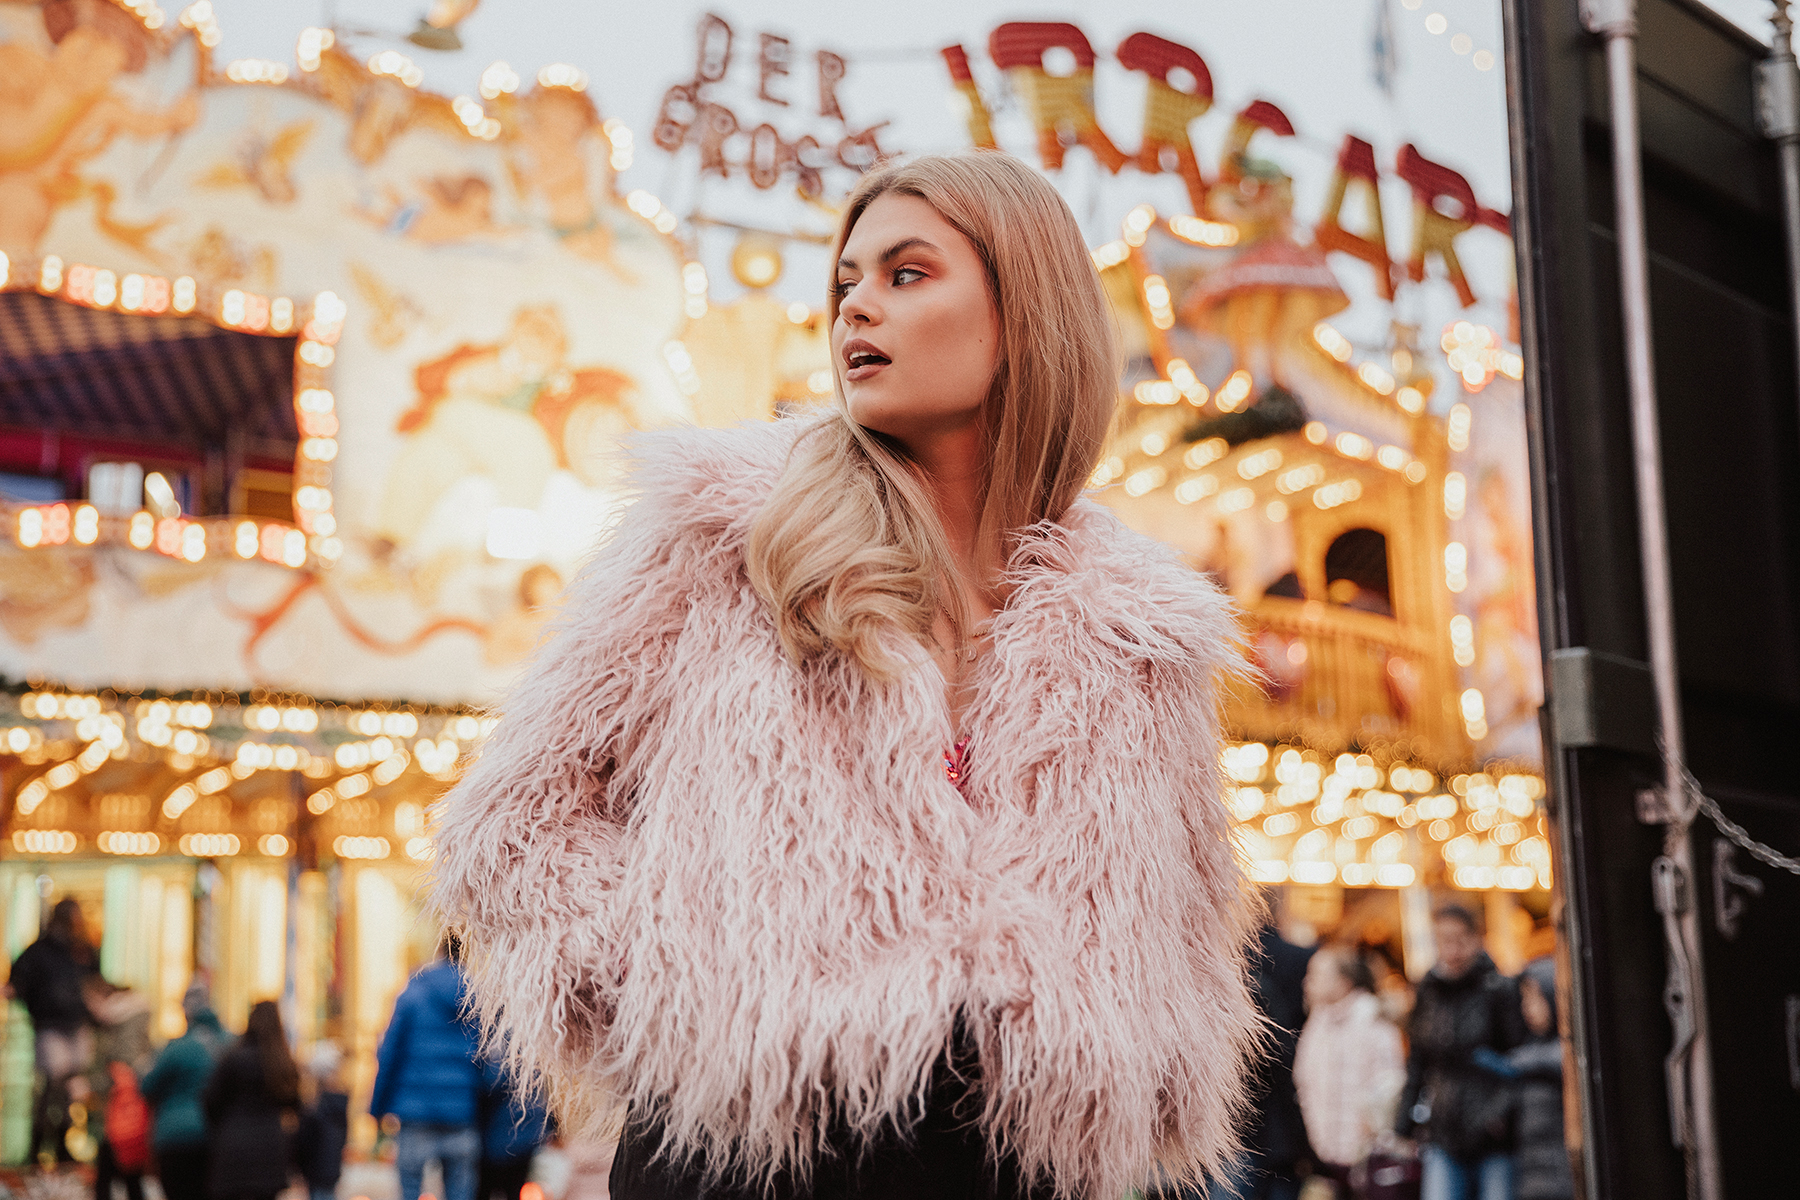 winter wonderland fashion shoot with Manon @ The Squad by London photographer Ailera Stone